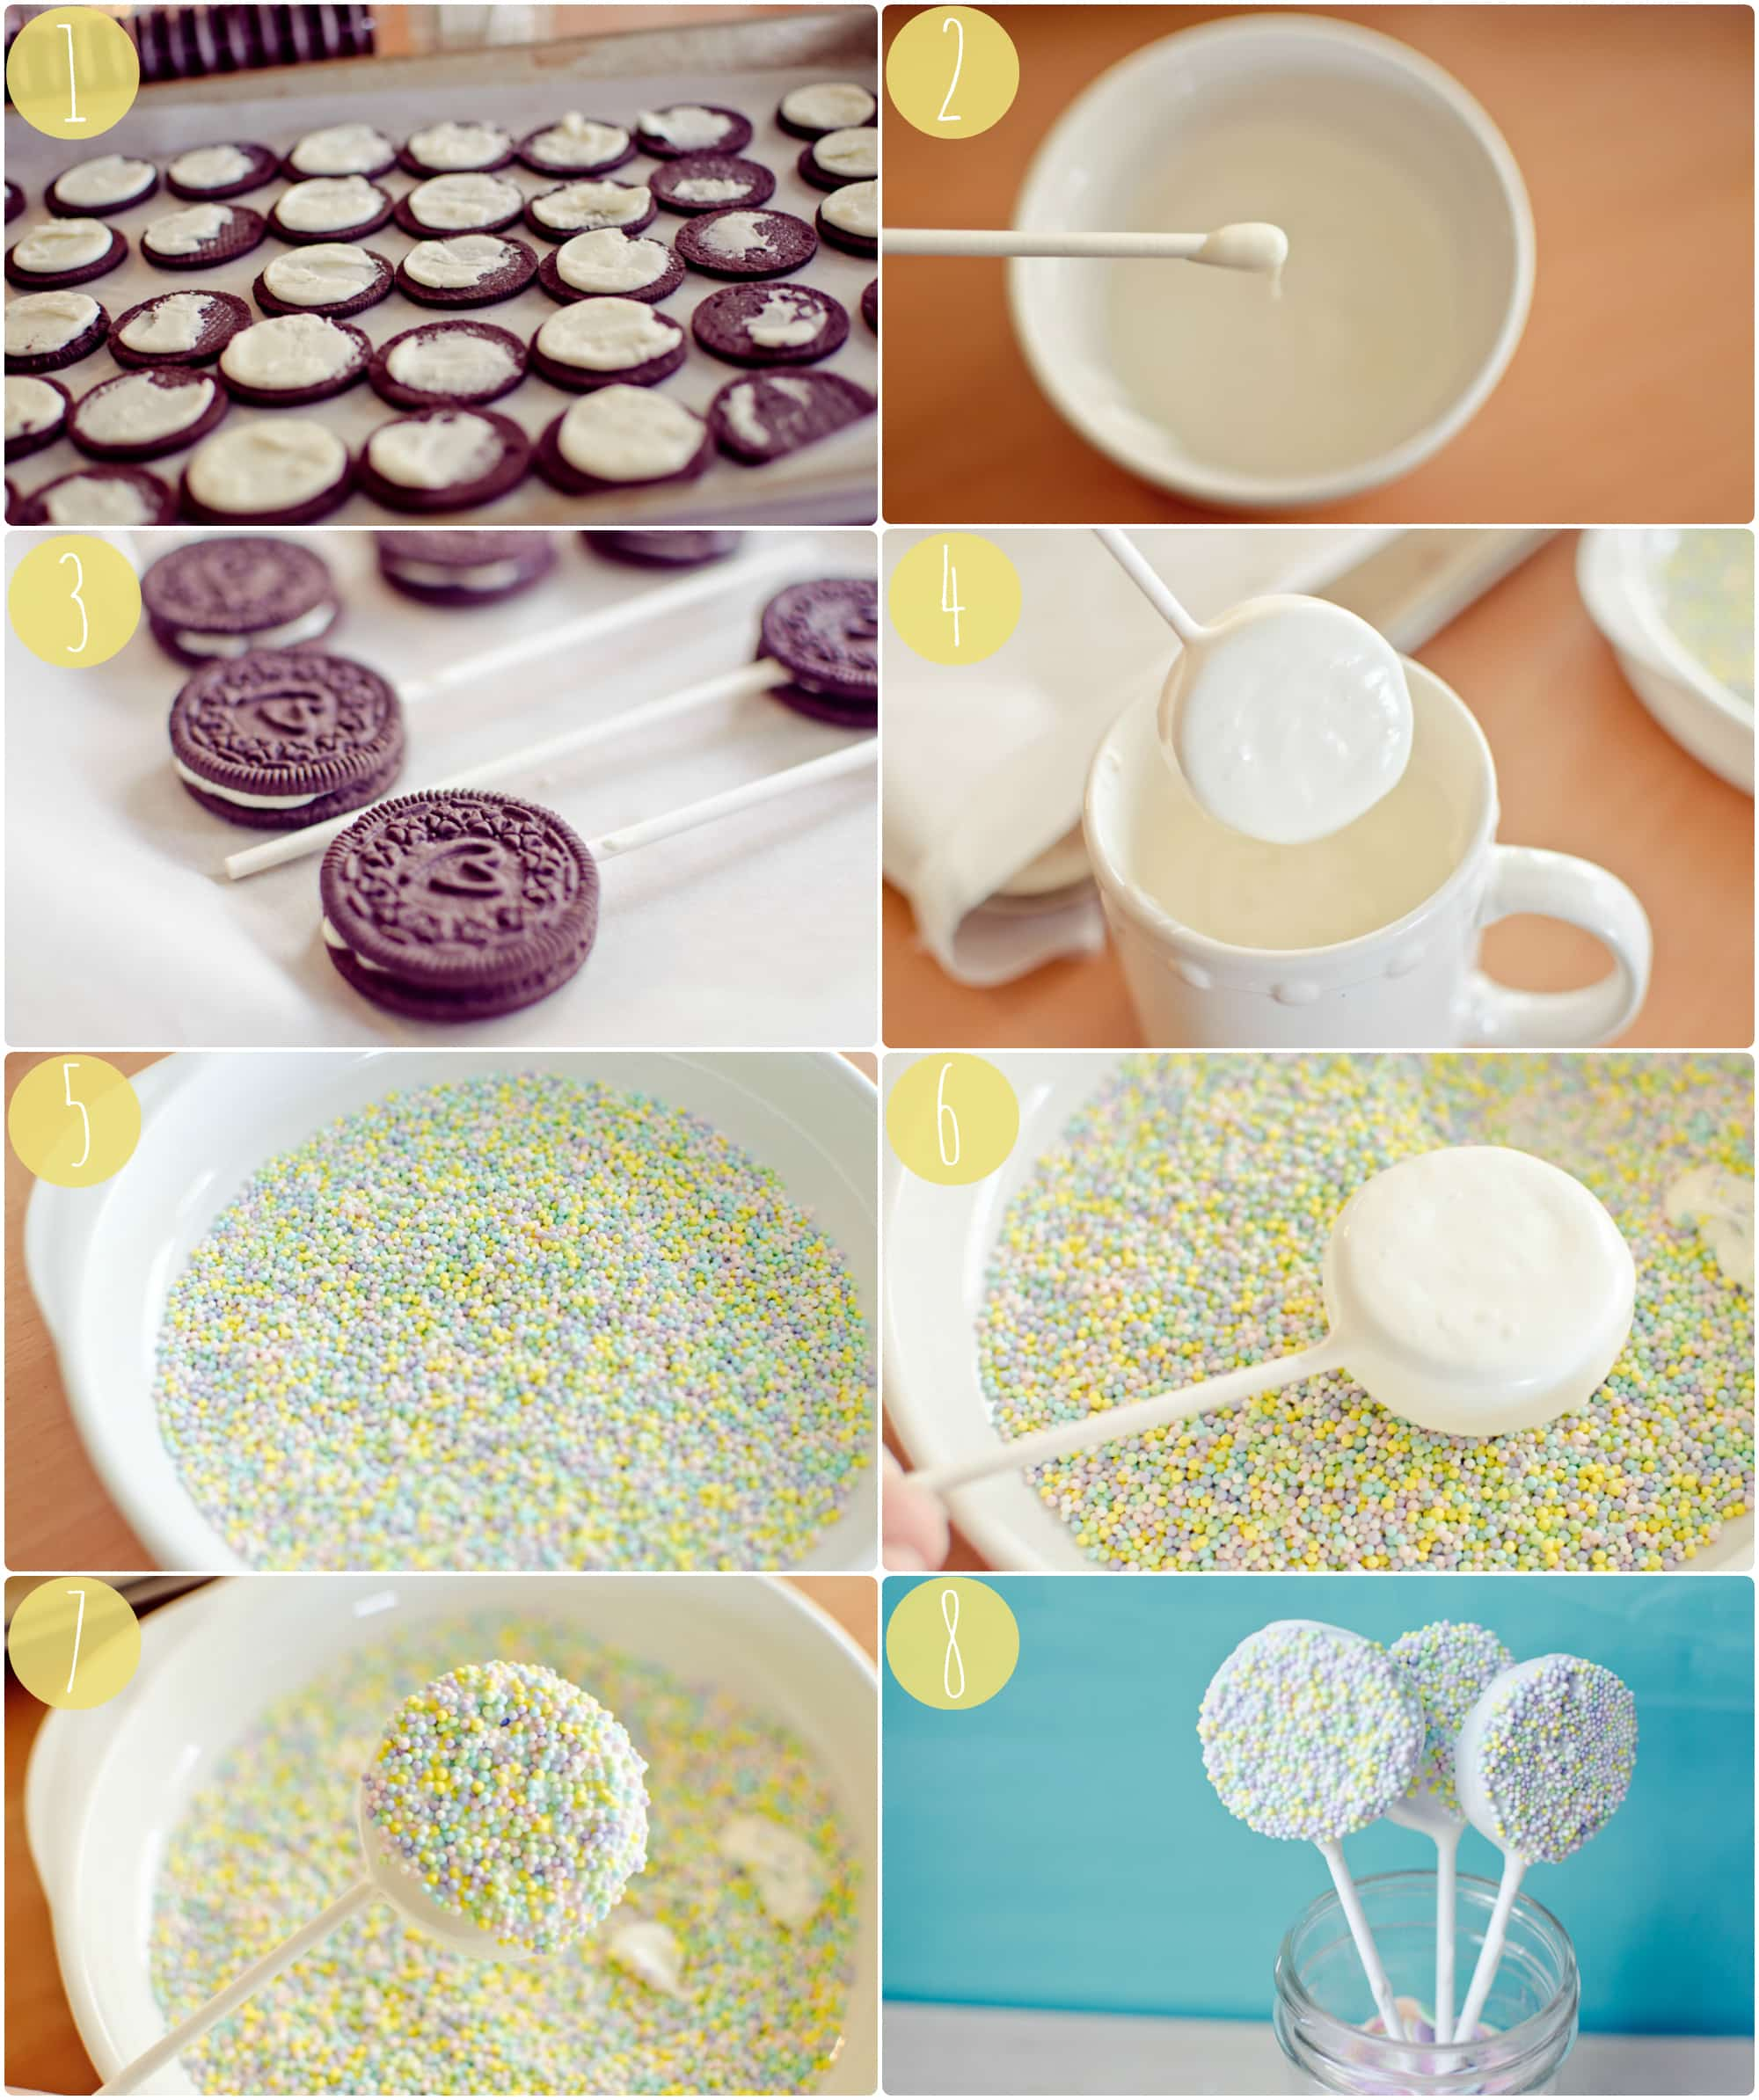 How to oreo pops